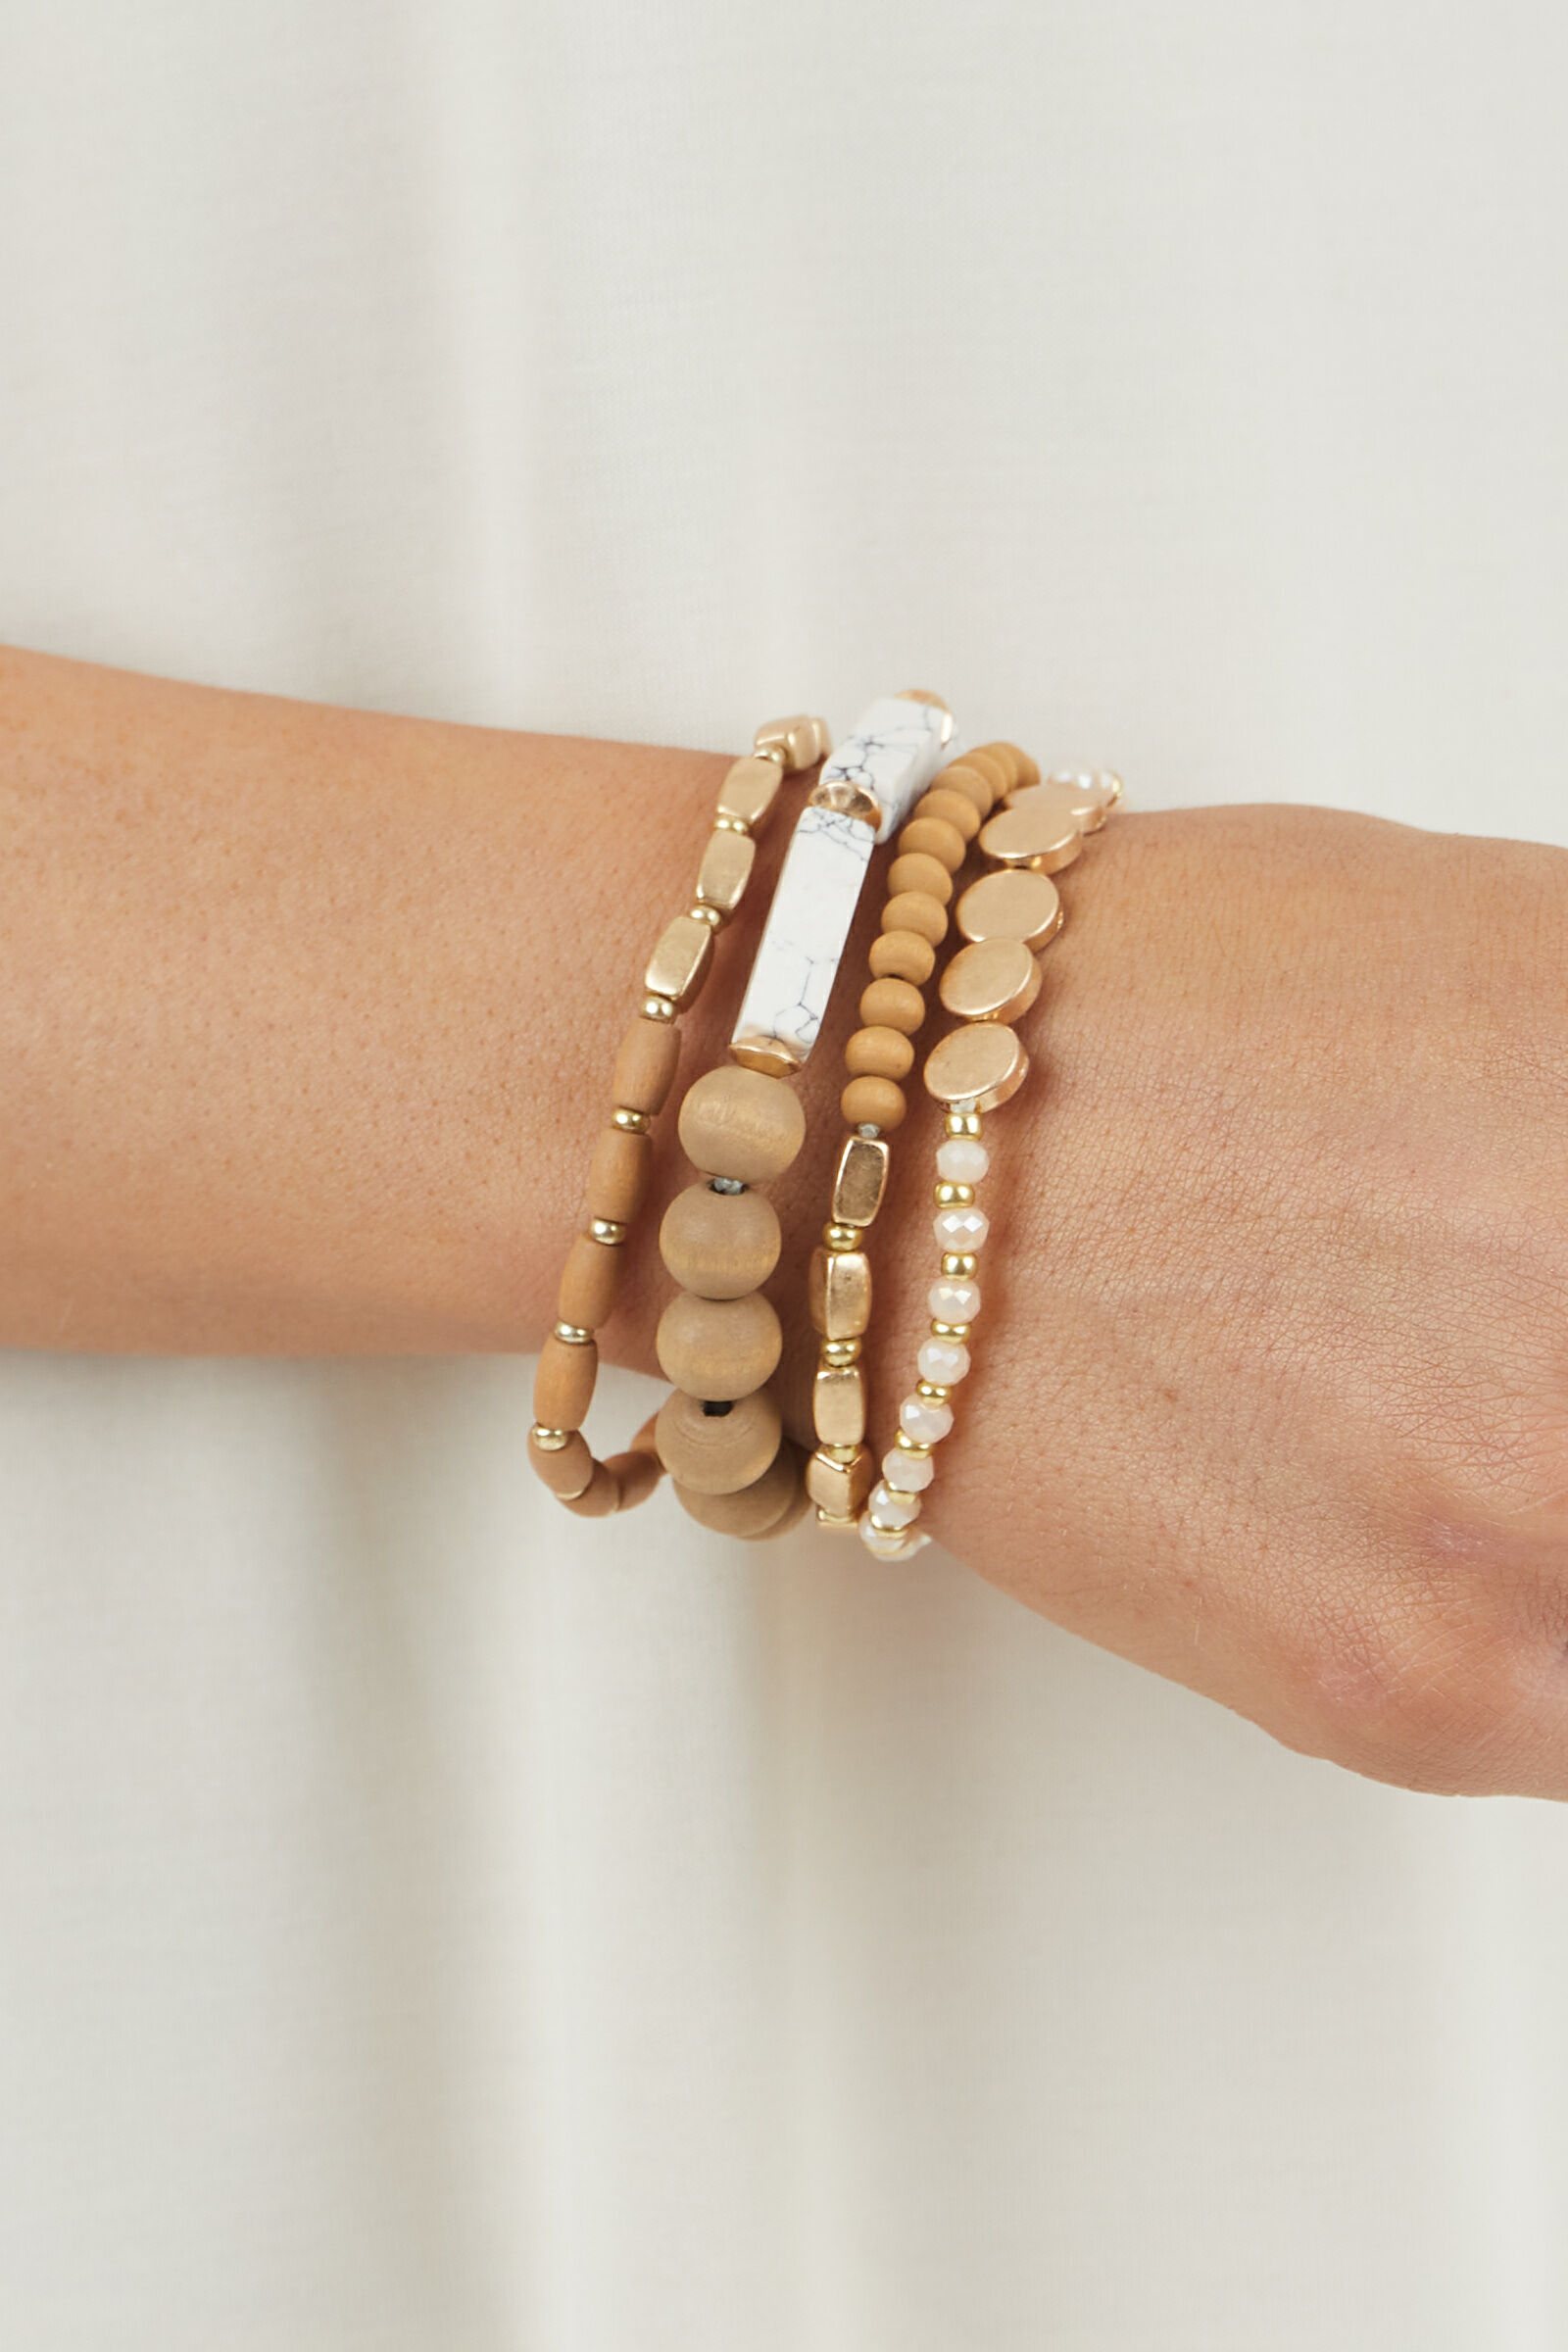 Peanut and Gold Beaded Bracelet Set with Marble Details